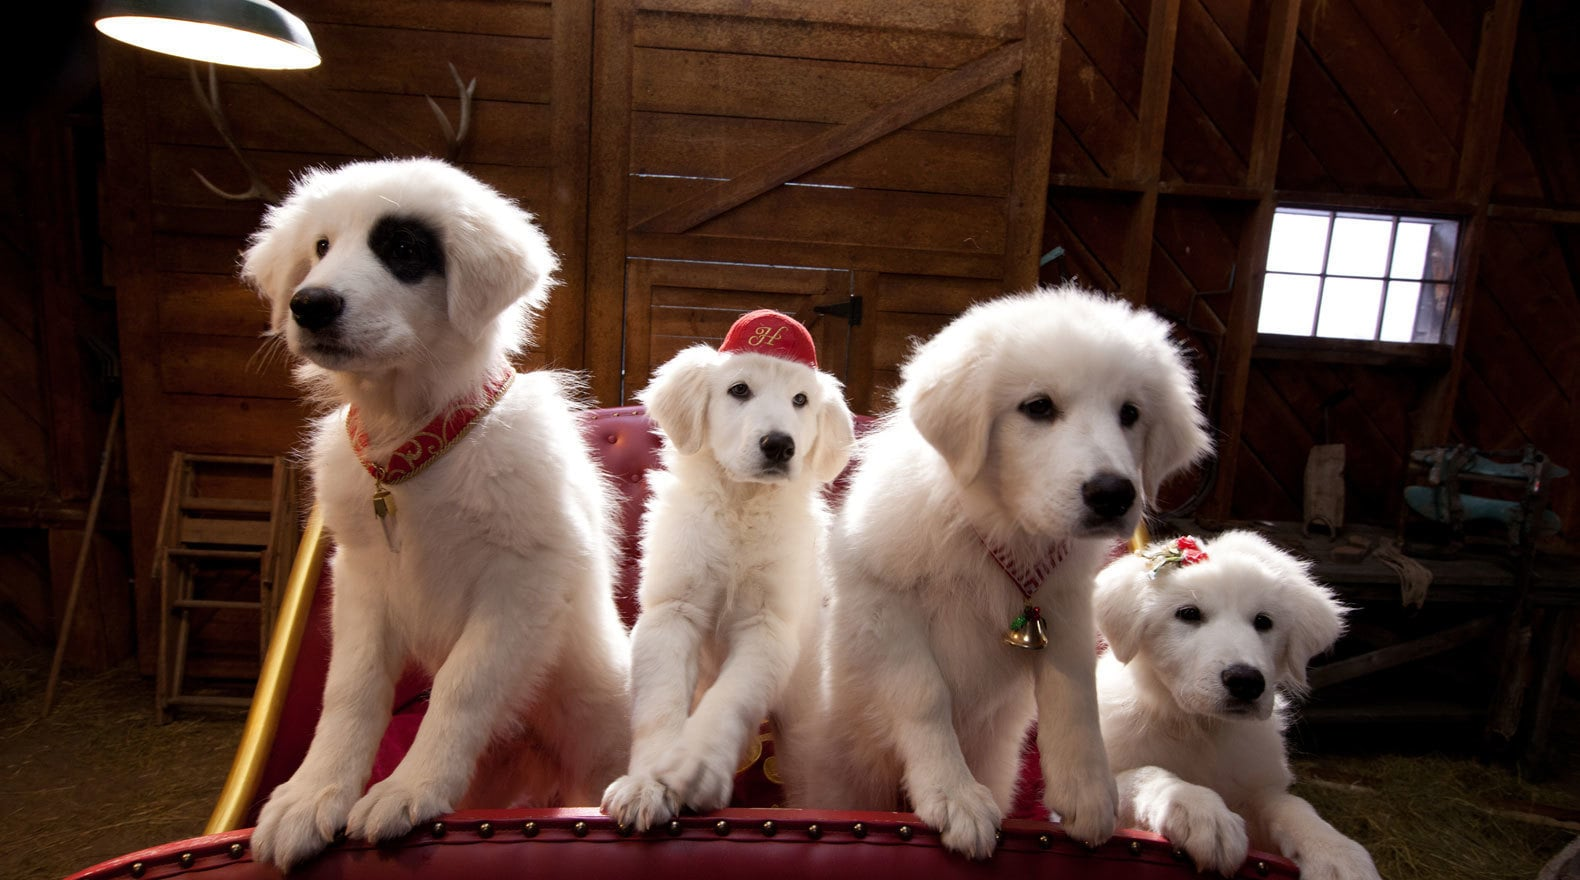 all four of Santa's puppies Hope, Jingle, Charity and Noble